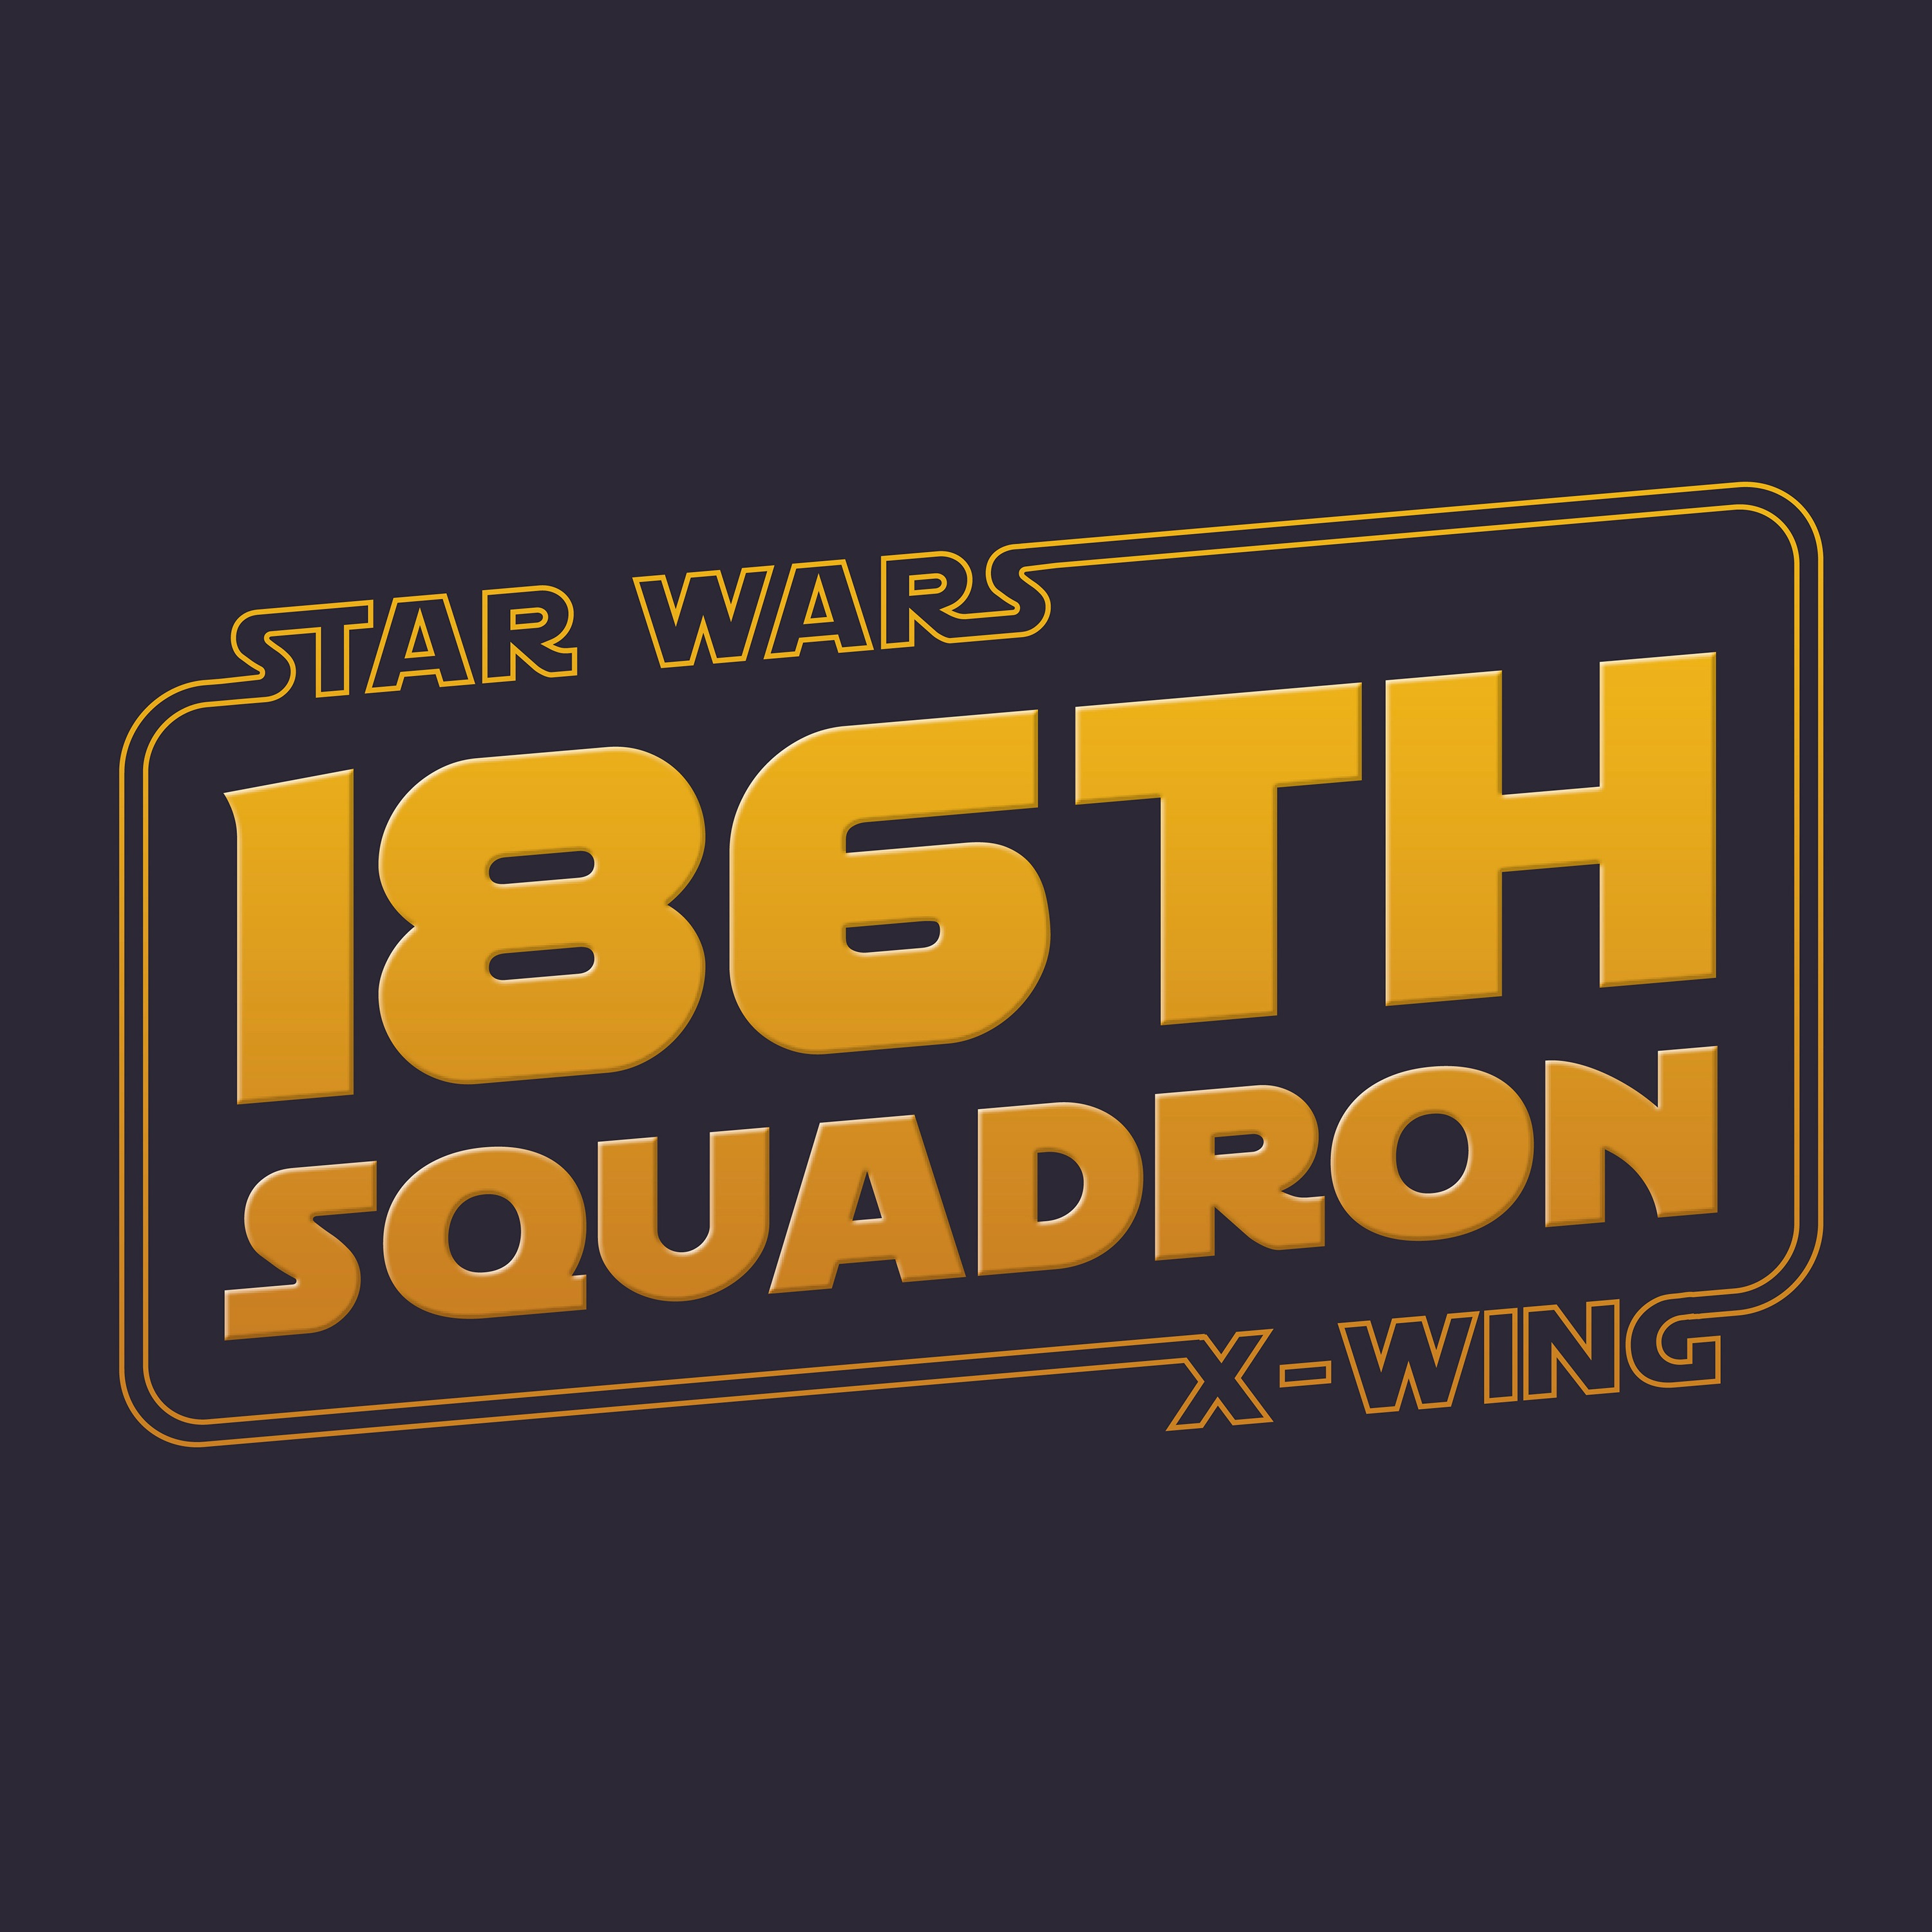 186th Squadron Podcast